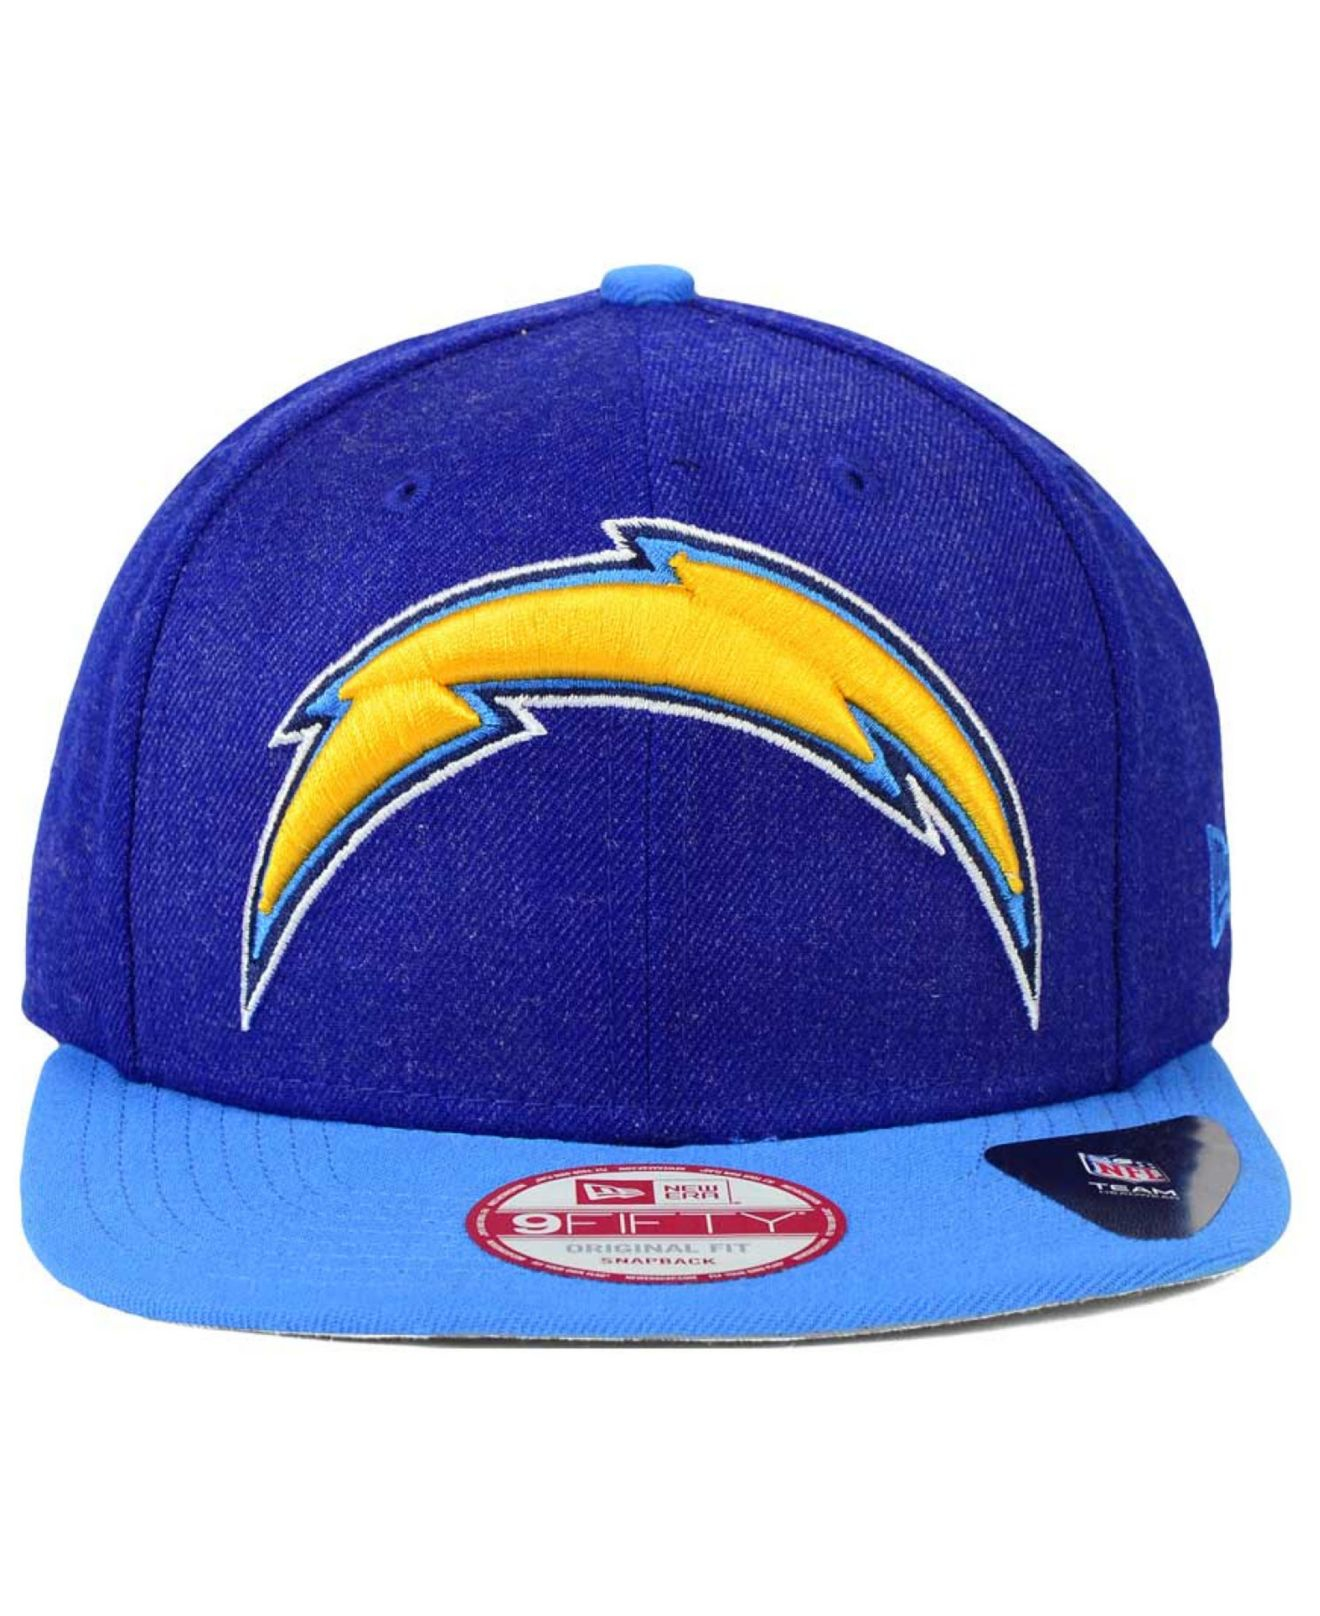 b3d30fb2d KTZ San Diego Chargers Logo Grand 9fifty Snapback Cap in Blue for ...